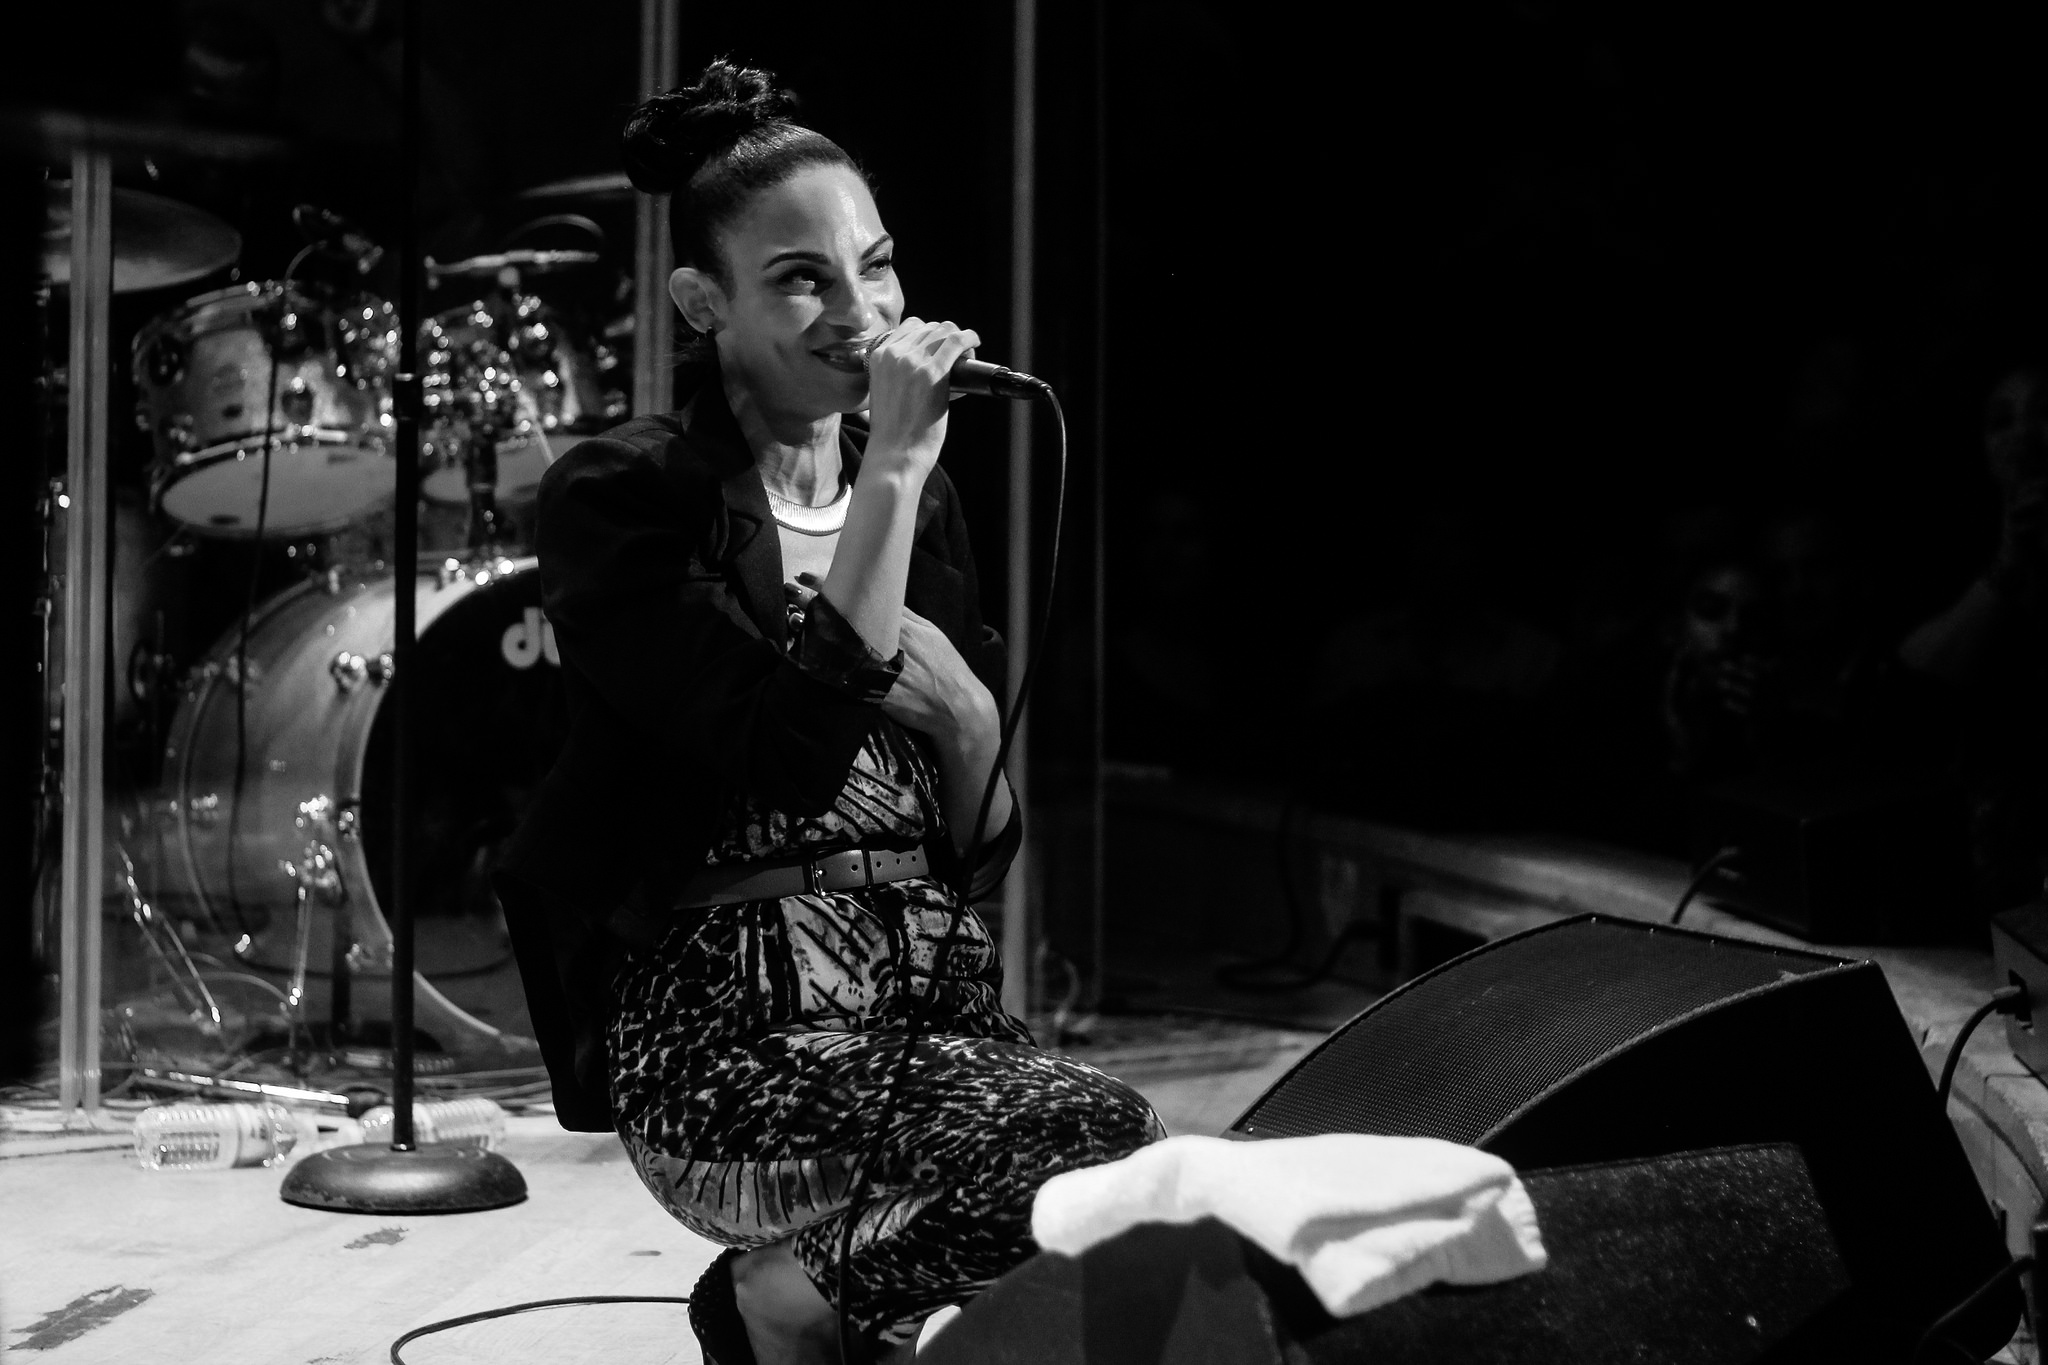 Catch a show (like Goapele) at Yoshi's (Amir Aziz/Flickr).